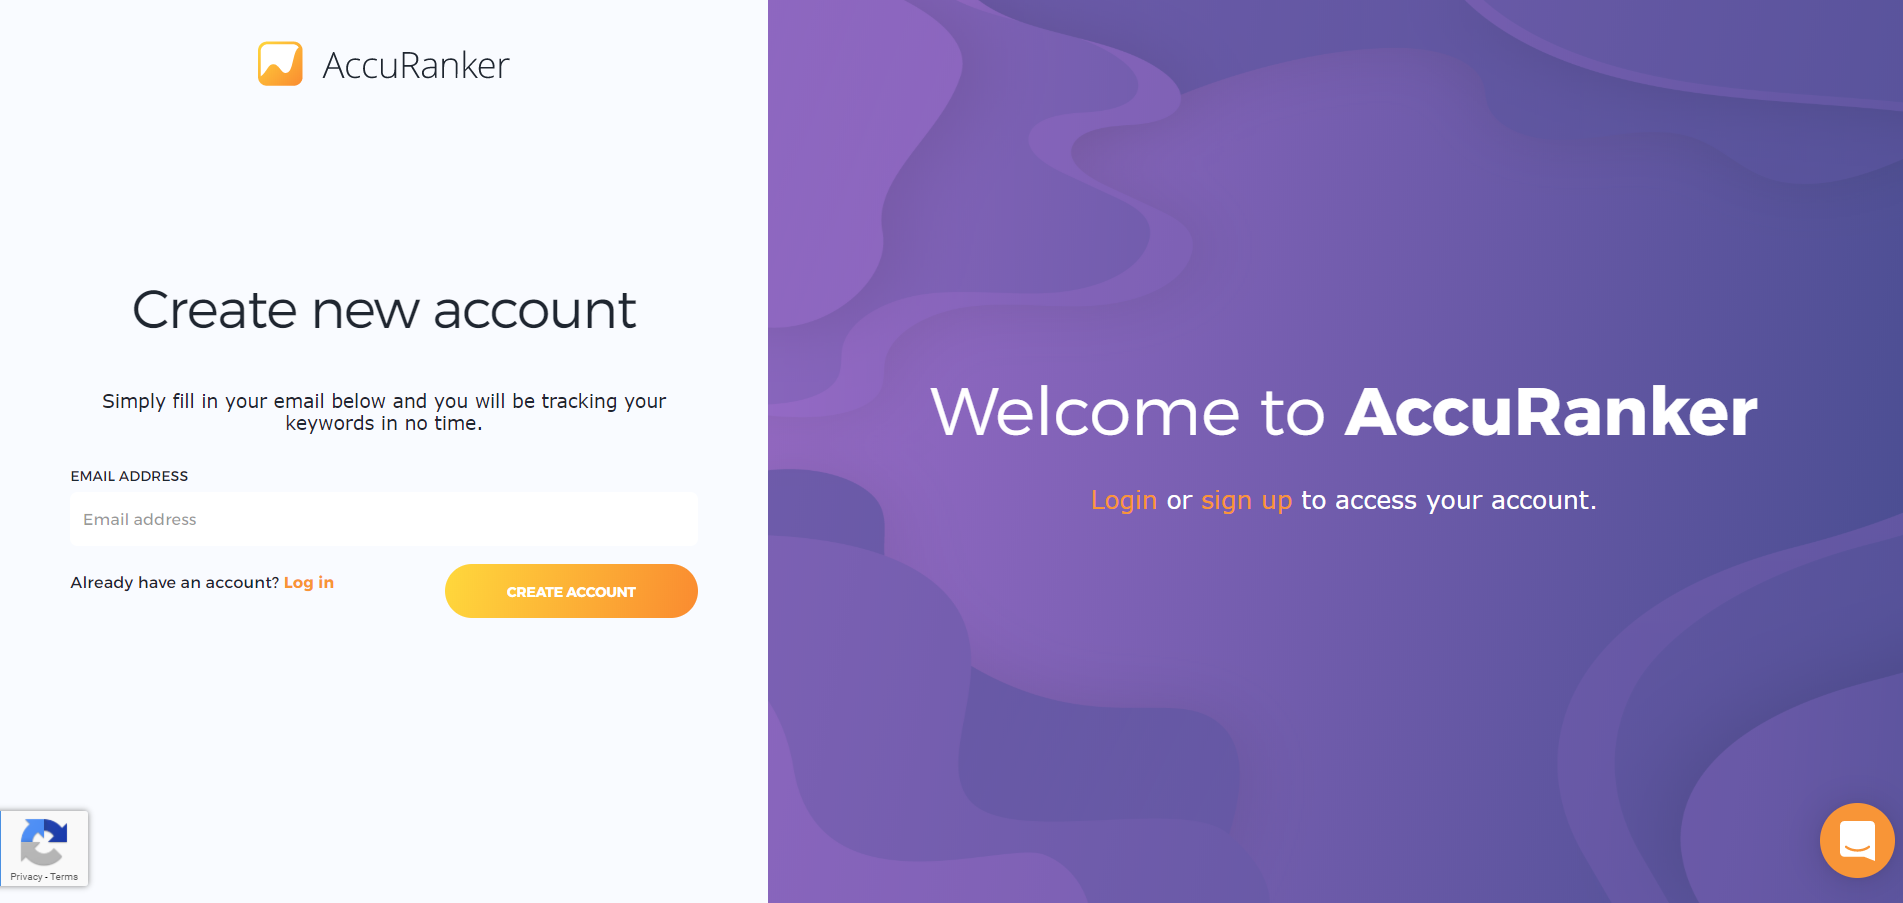 AccuRanker - Create New Account